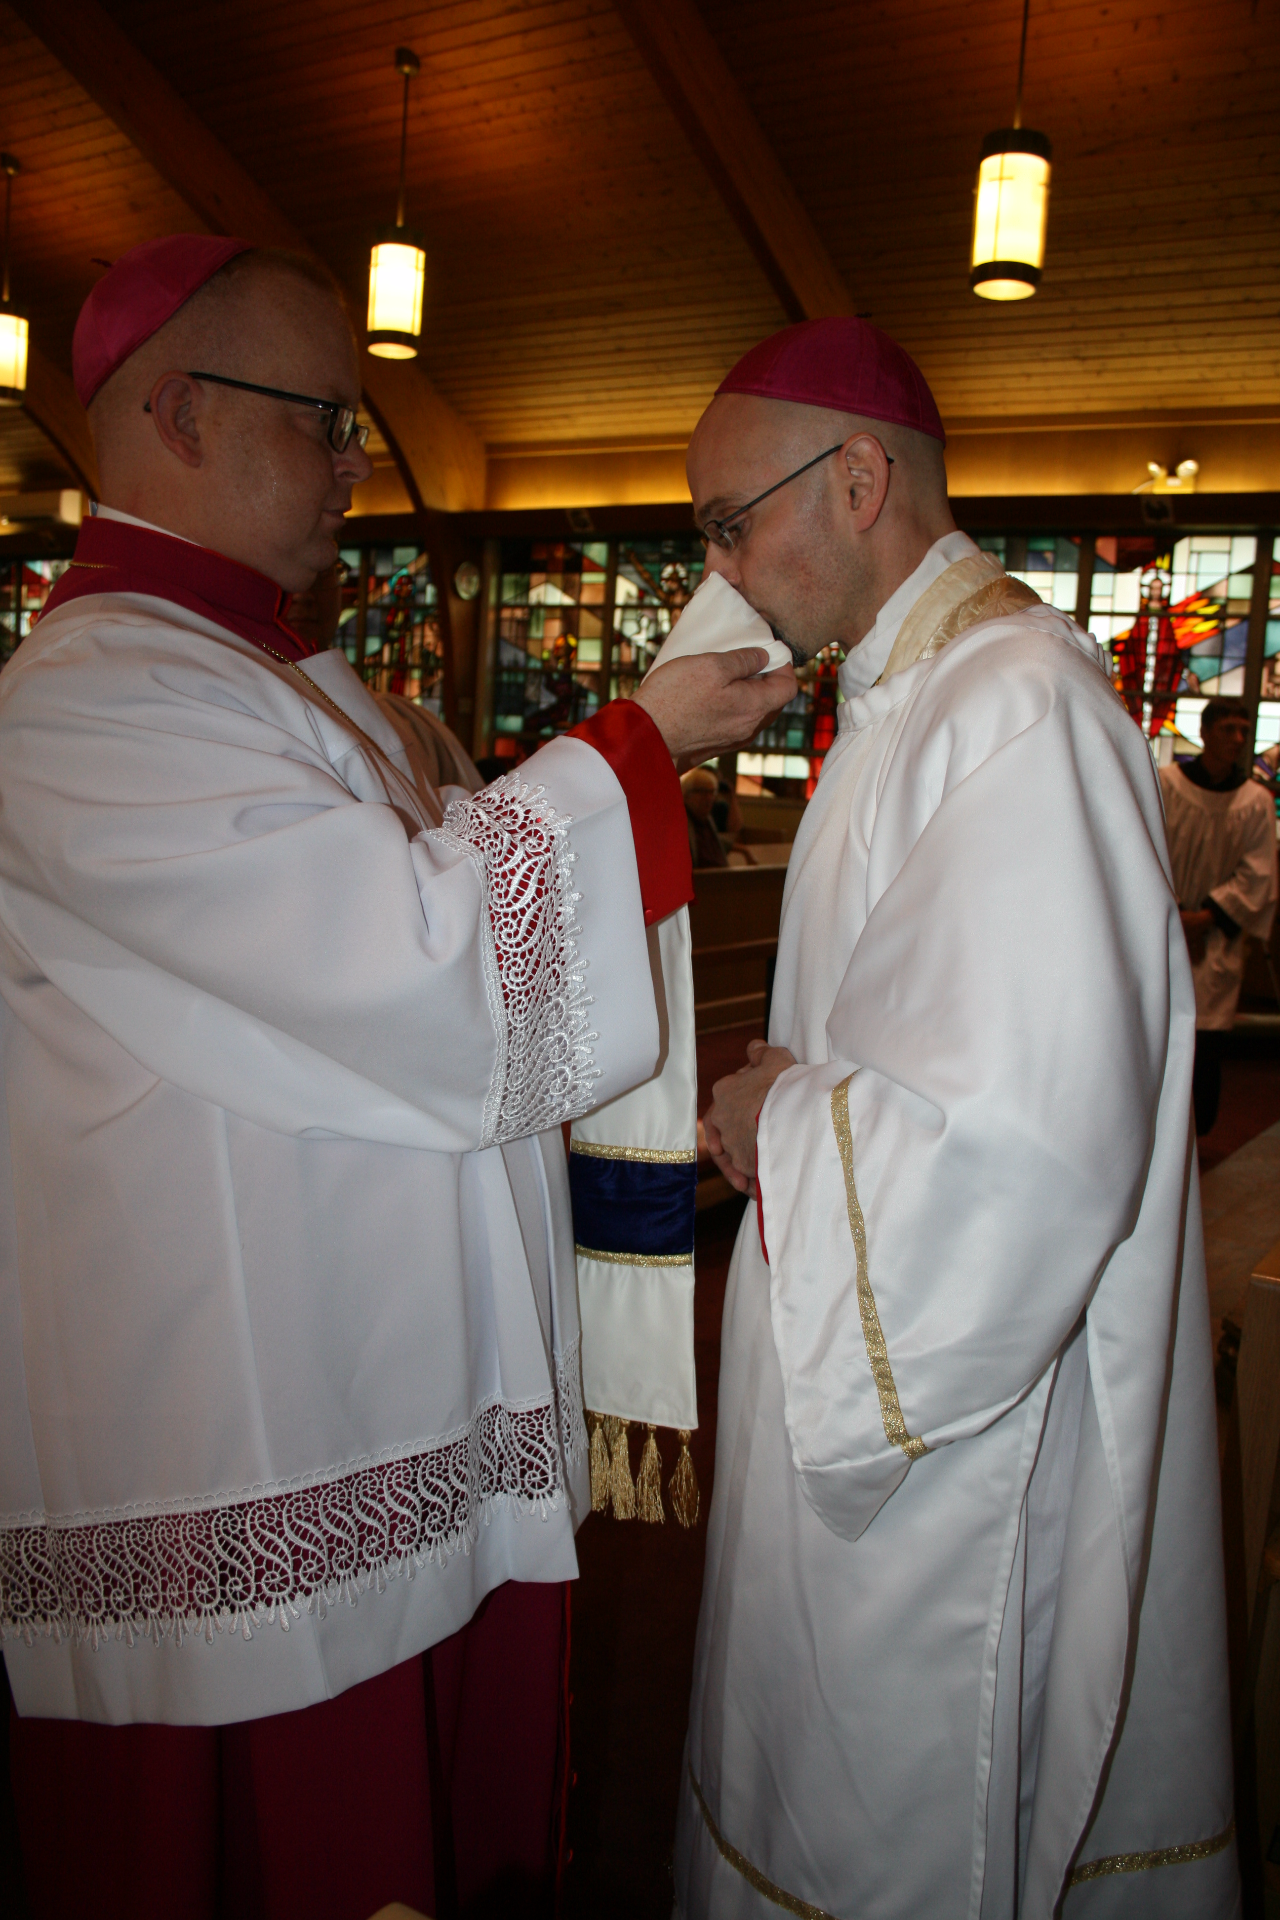 Bishop elect kisses the stole